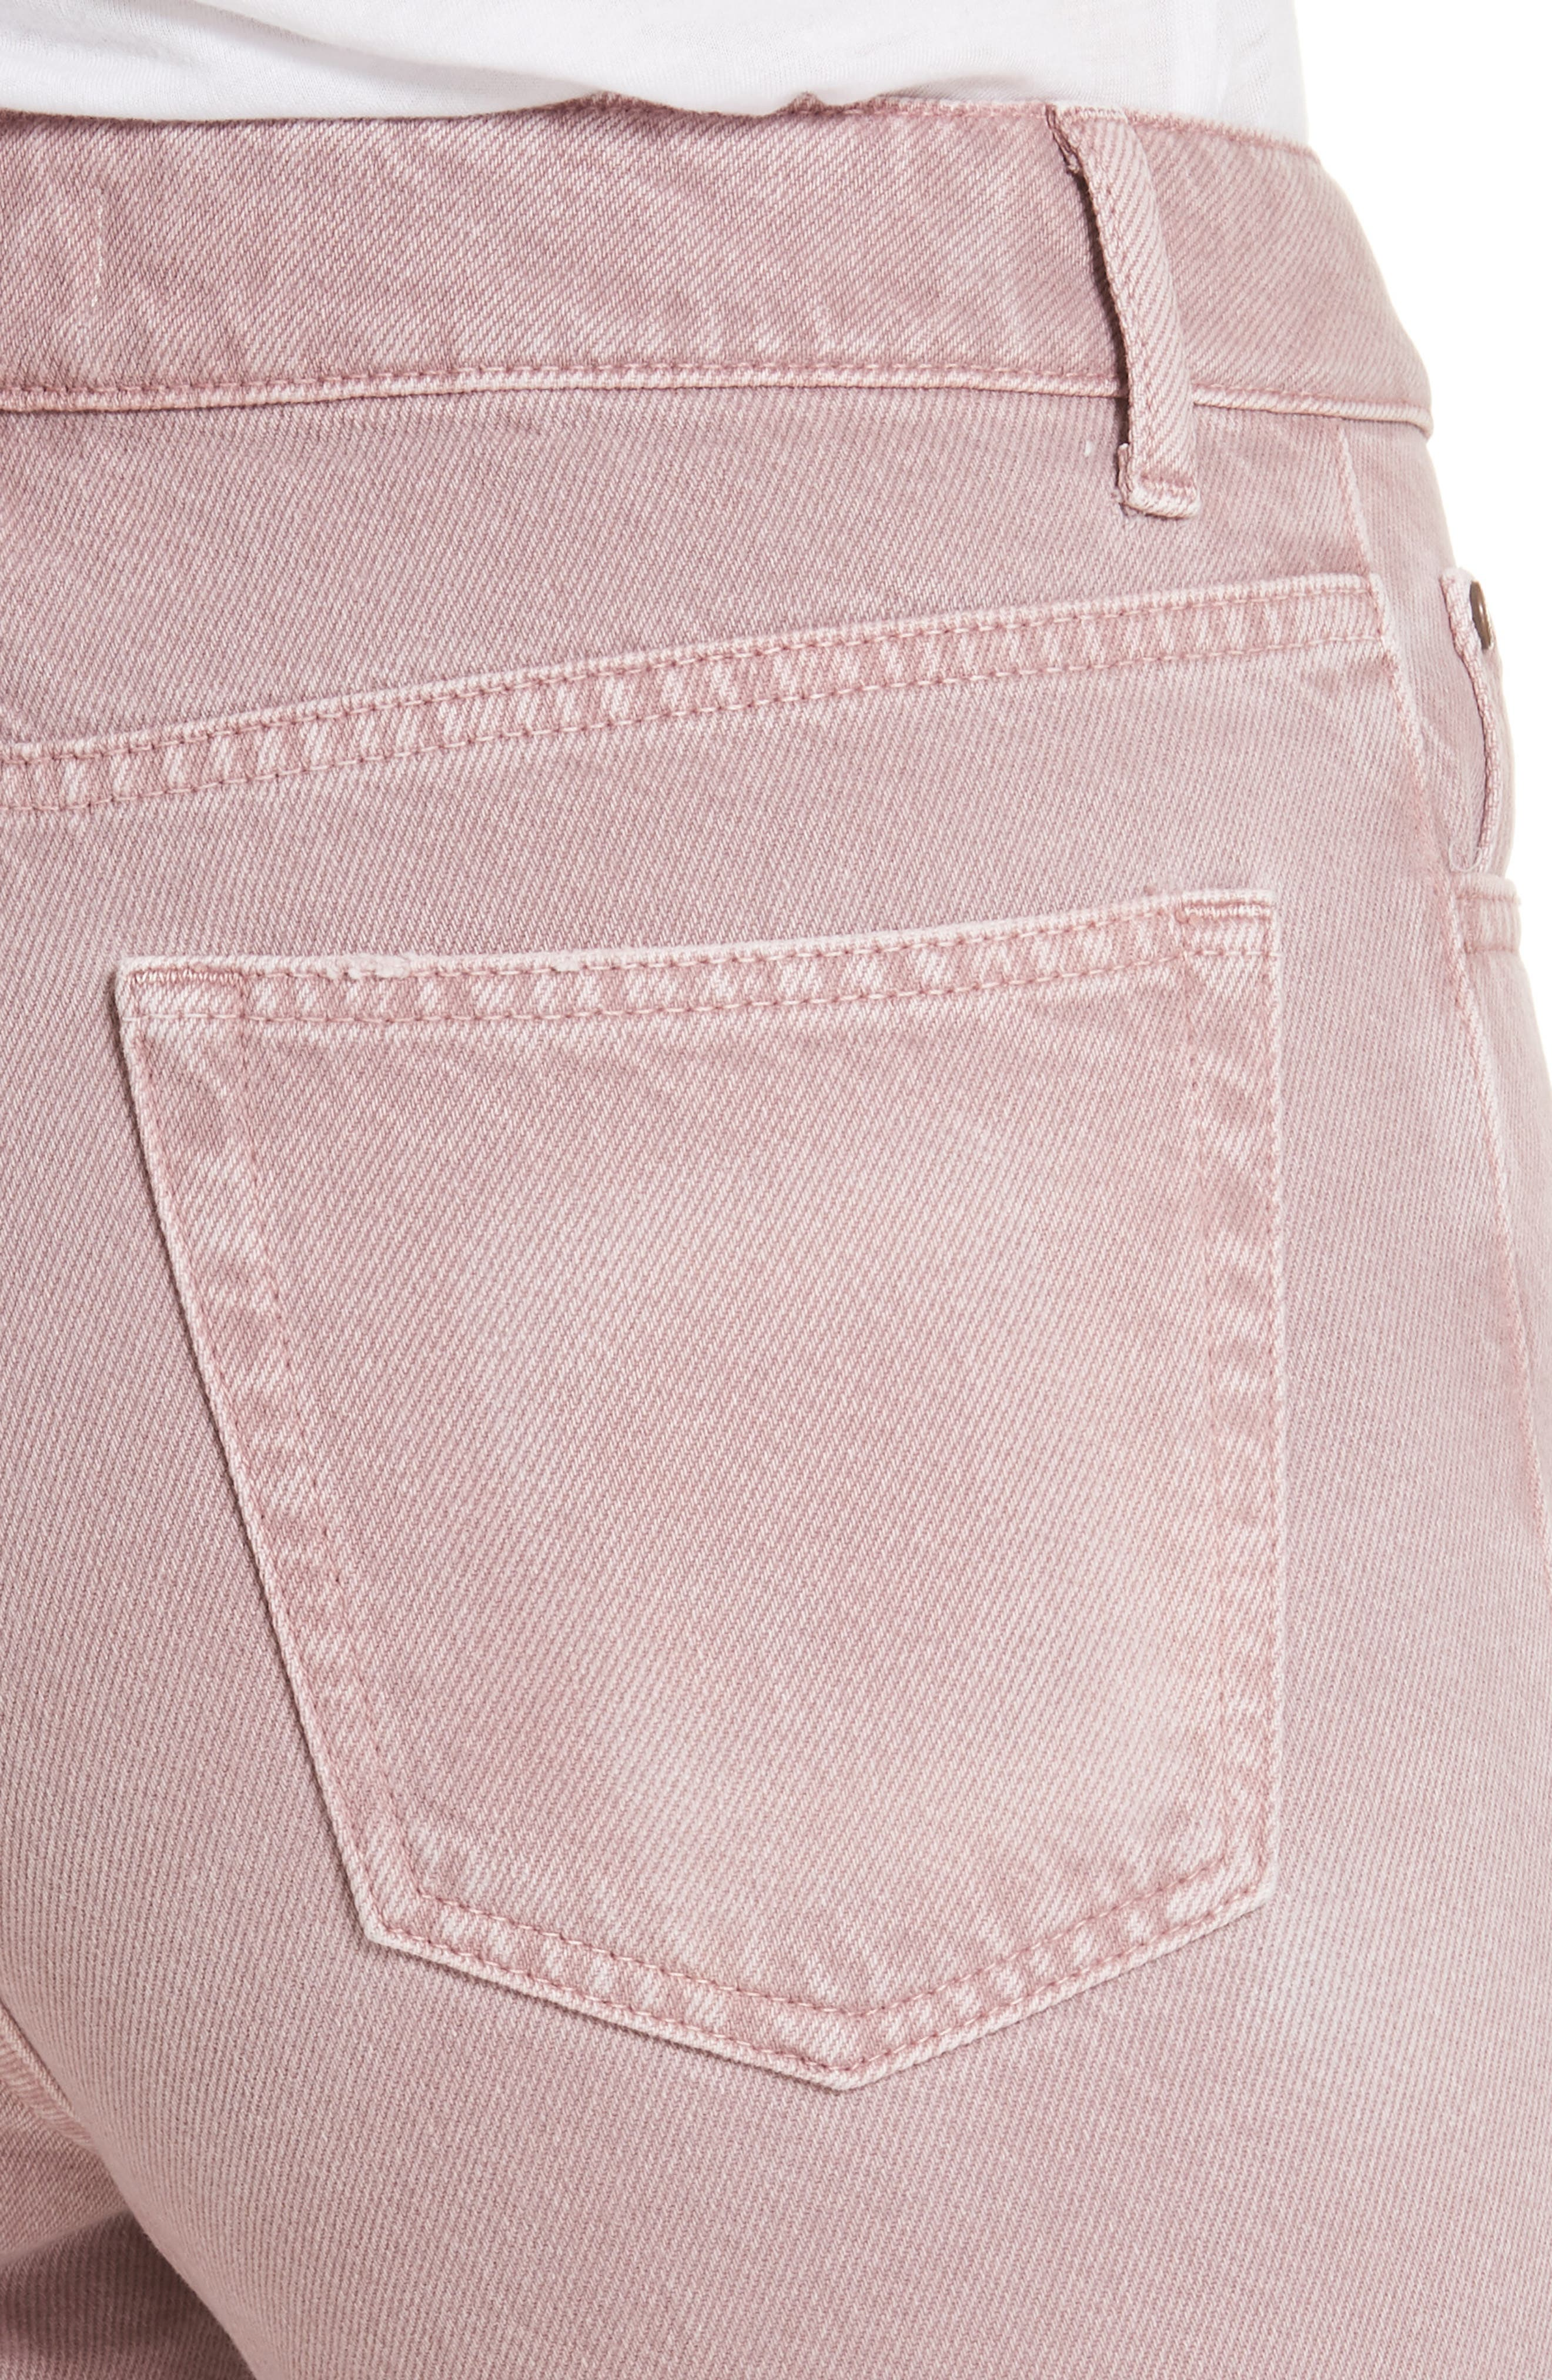 Ripped Raw Edge Jeans,                             Alternate thumbnail 5, color,                             650